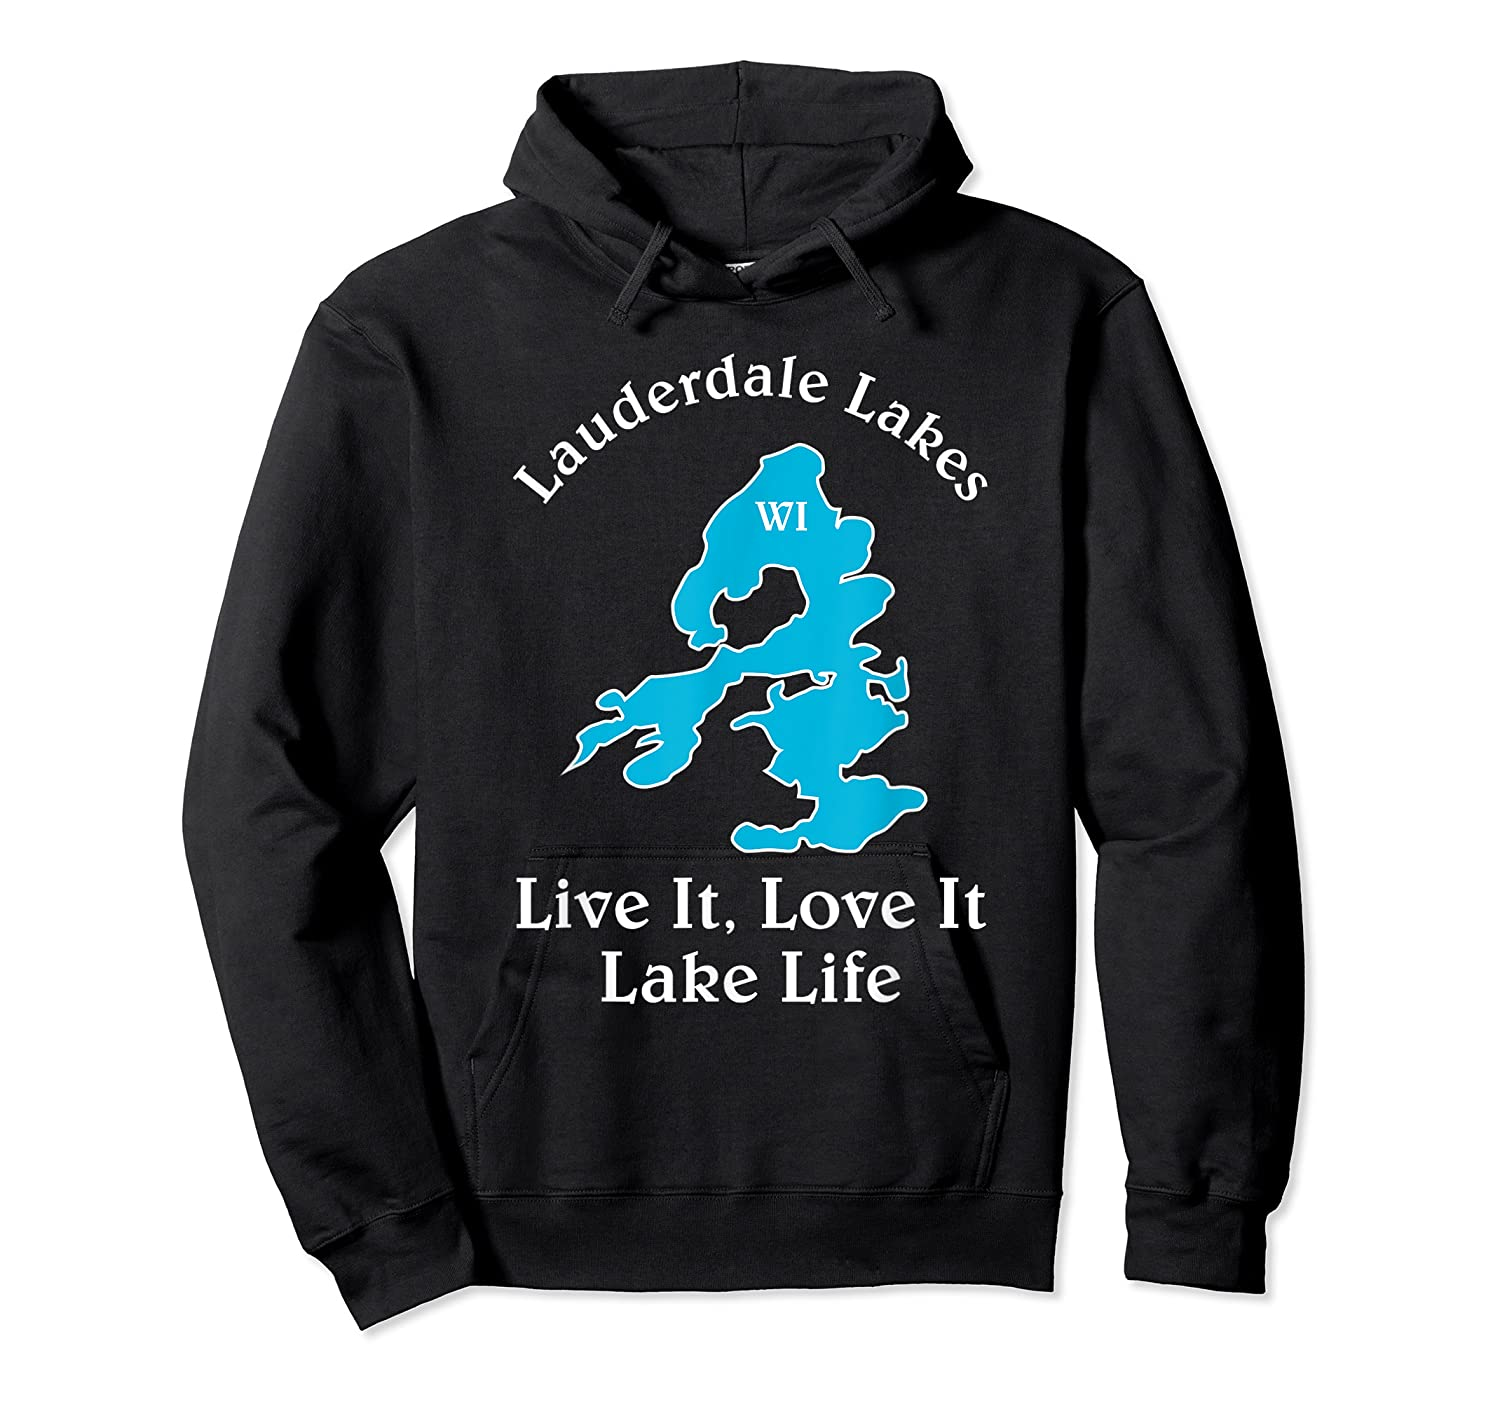 Lauderdale Lakes Wi Lake Life T-shirt Wisconsin Fans Tee Unisex Pullover Hoodie